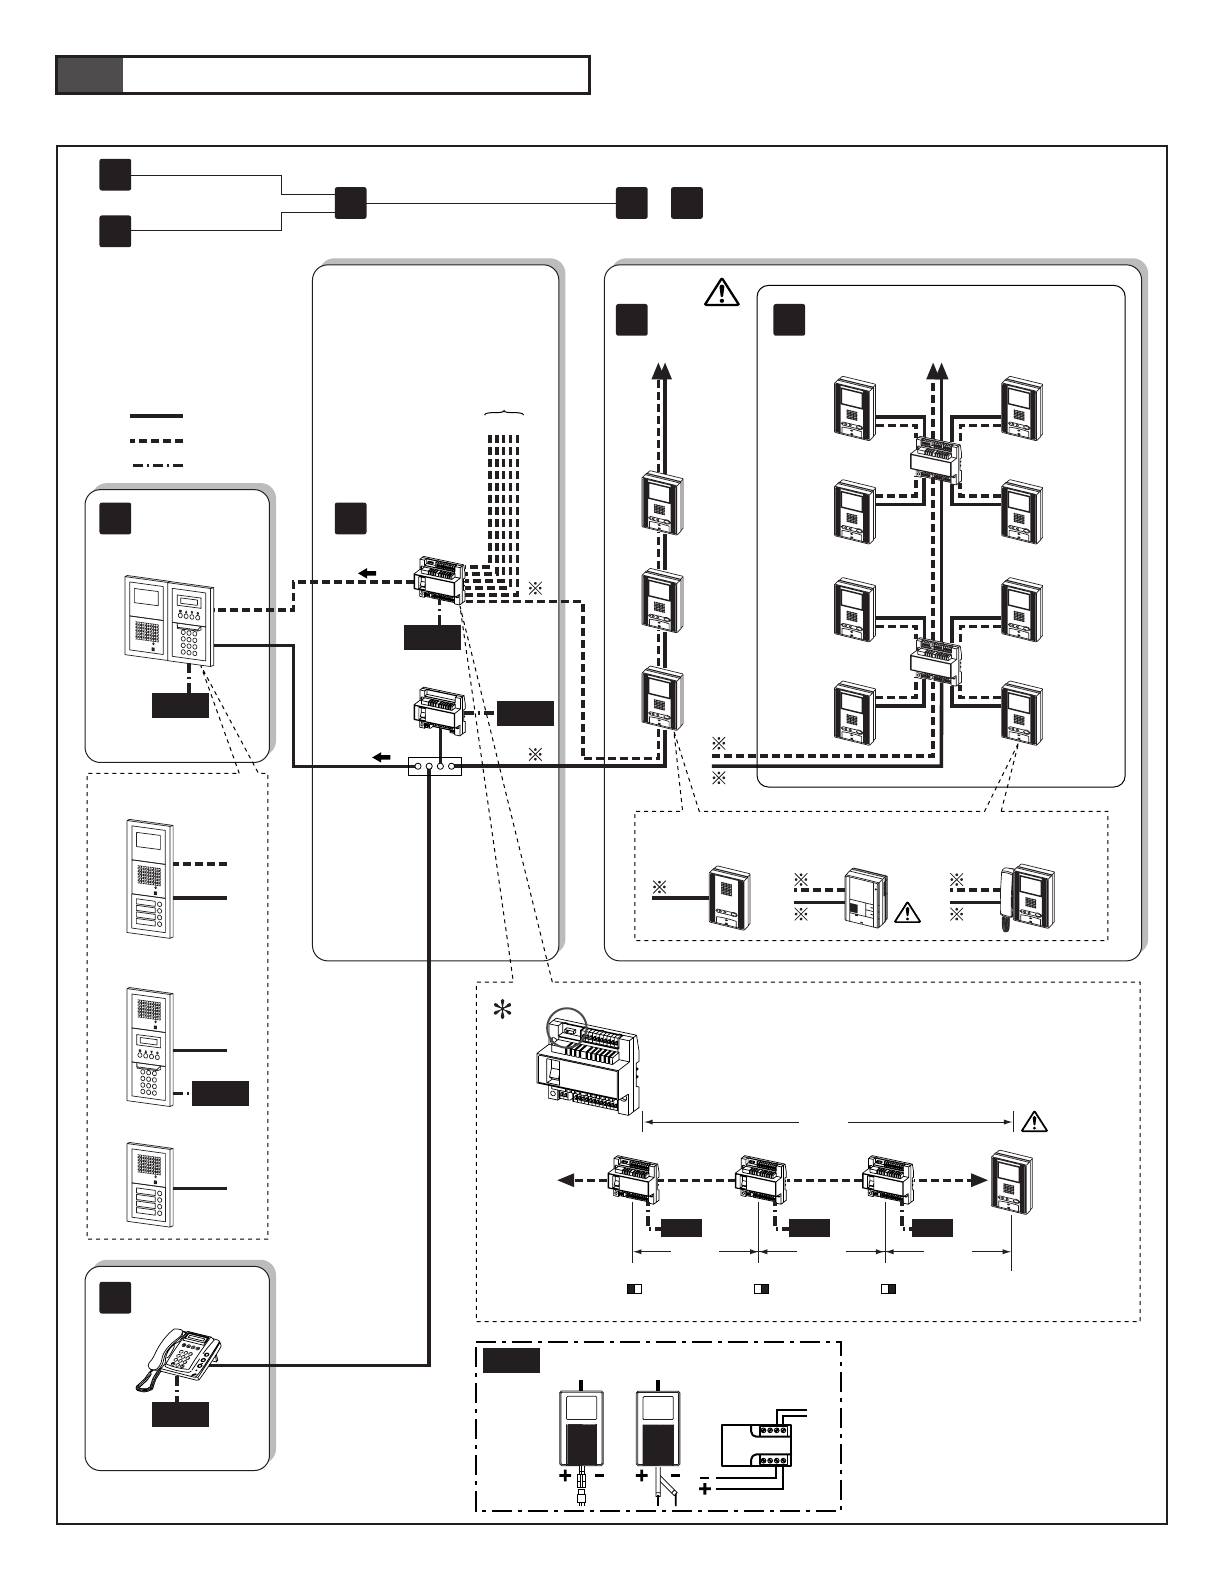 d75e15be a0ca 4432 9d25 7092055fdc5f bg3 page 3 of aiphone intercom system 0207 aic user guide aiphone intercom wiring diagram at soozxer.org